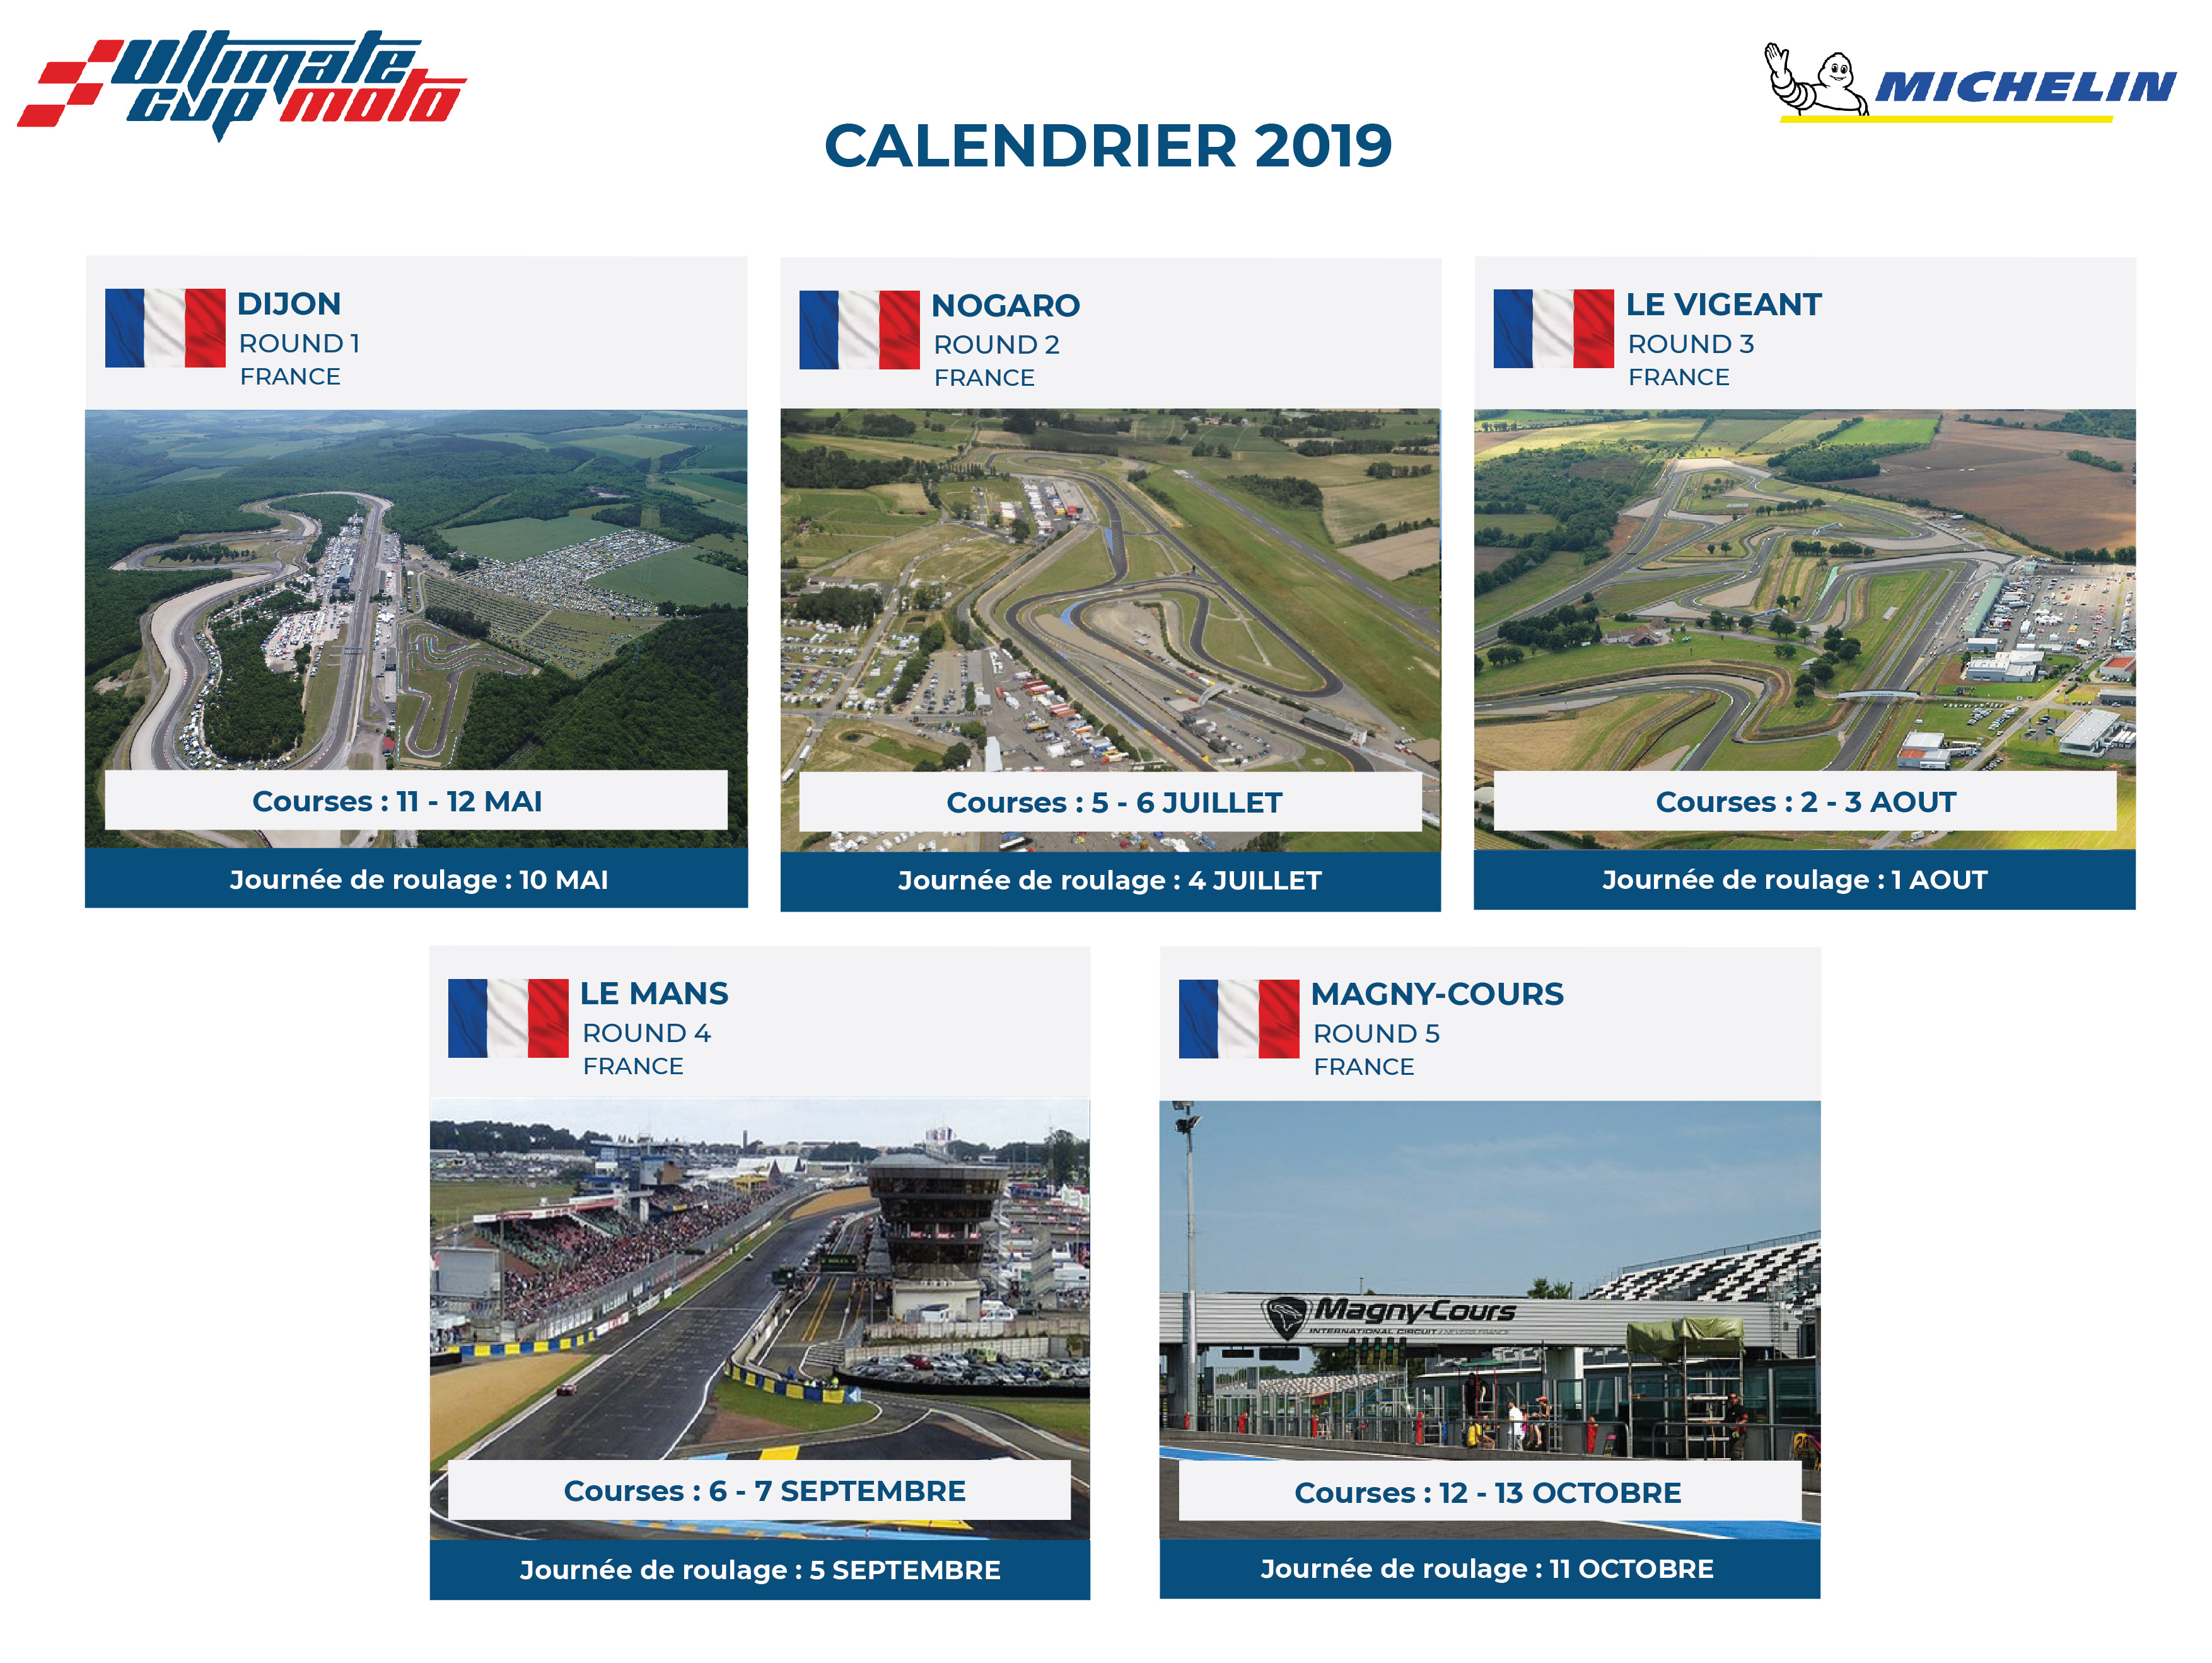 Calendrier Des Courses 2019.Calendrier 2019 Ultimate Cup